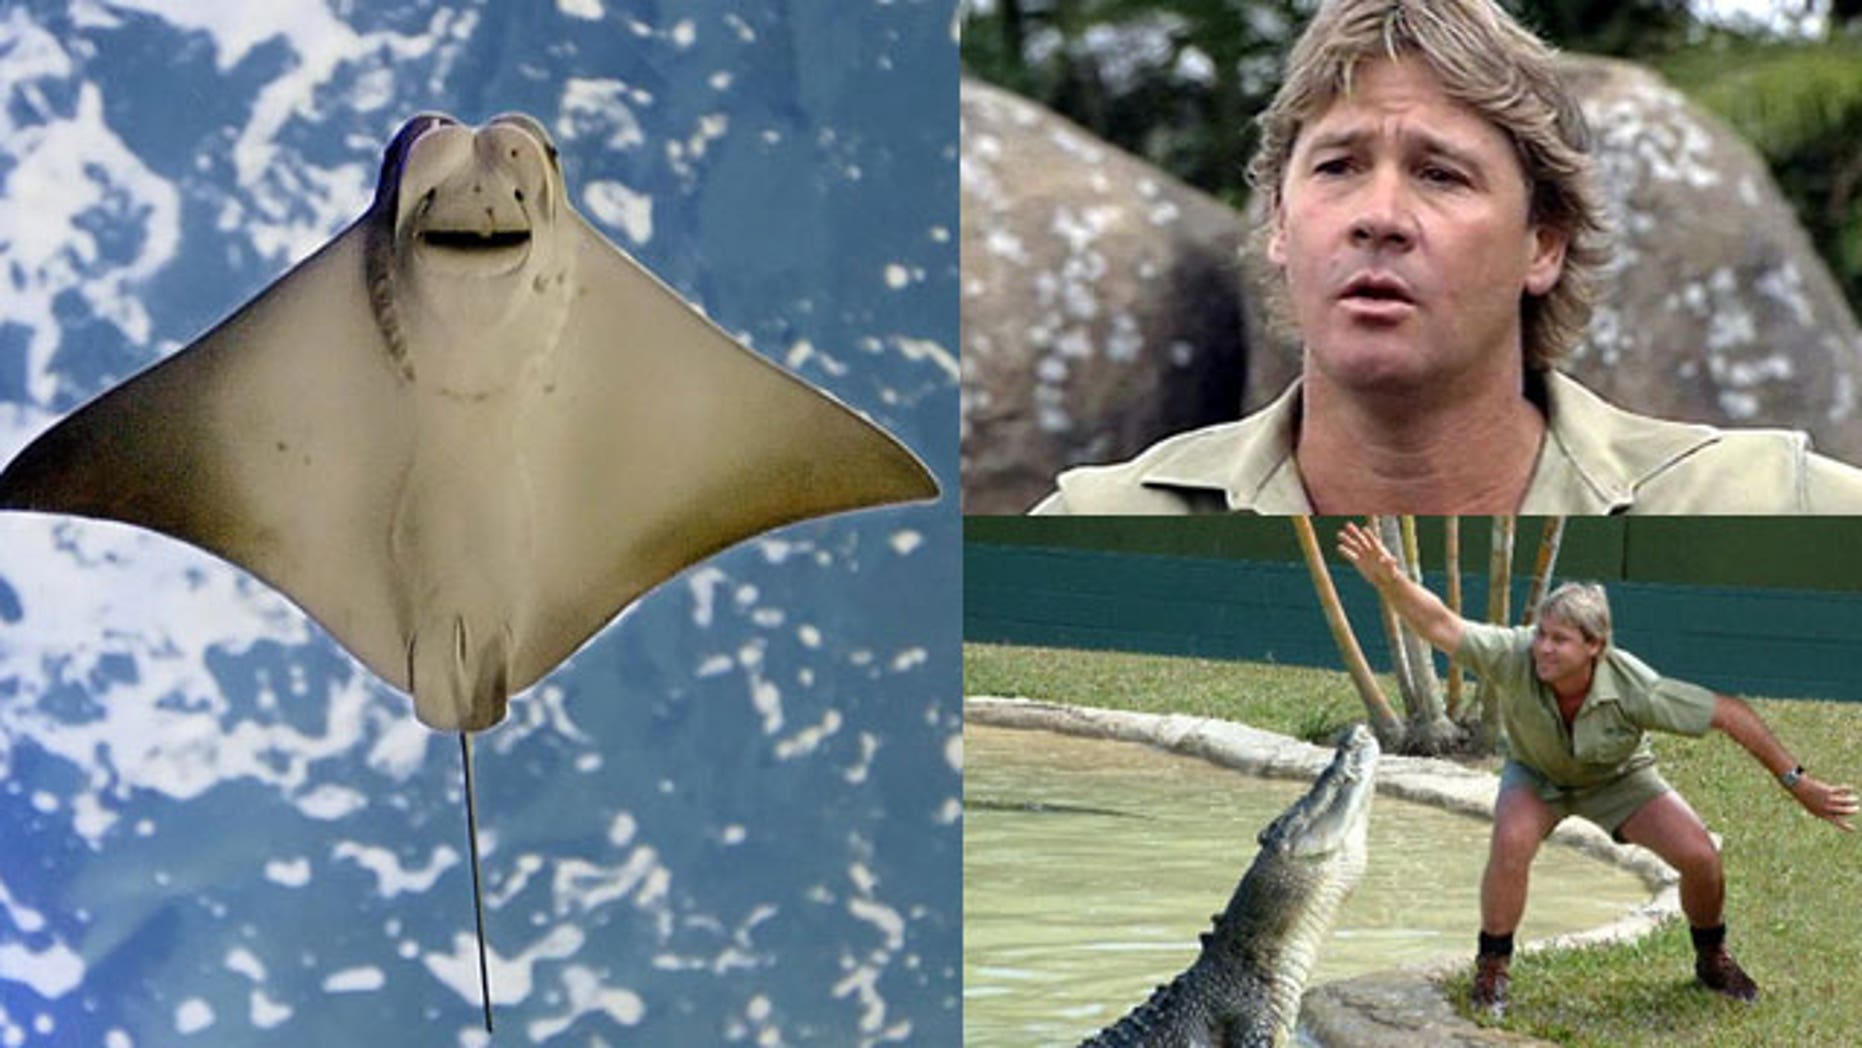 """Steve Irwin, the hugely popular Australian television personality and conservationist known as the """"Crocodile Hunter,"""" was killed in 2006 by a stingray while filming off the Great Barrier Reef. He was 44."""